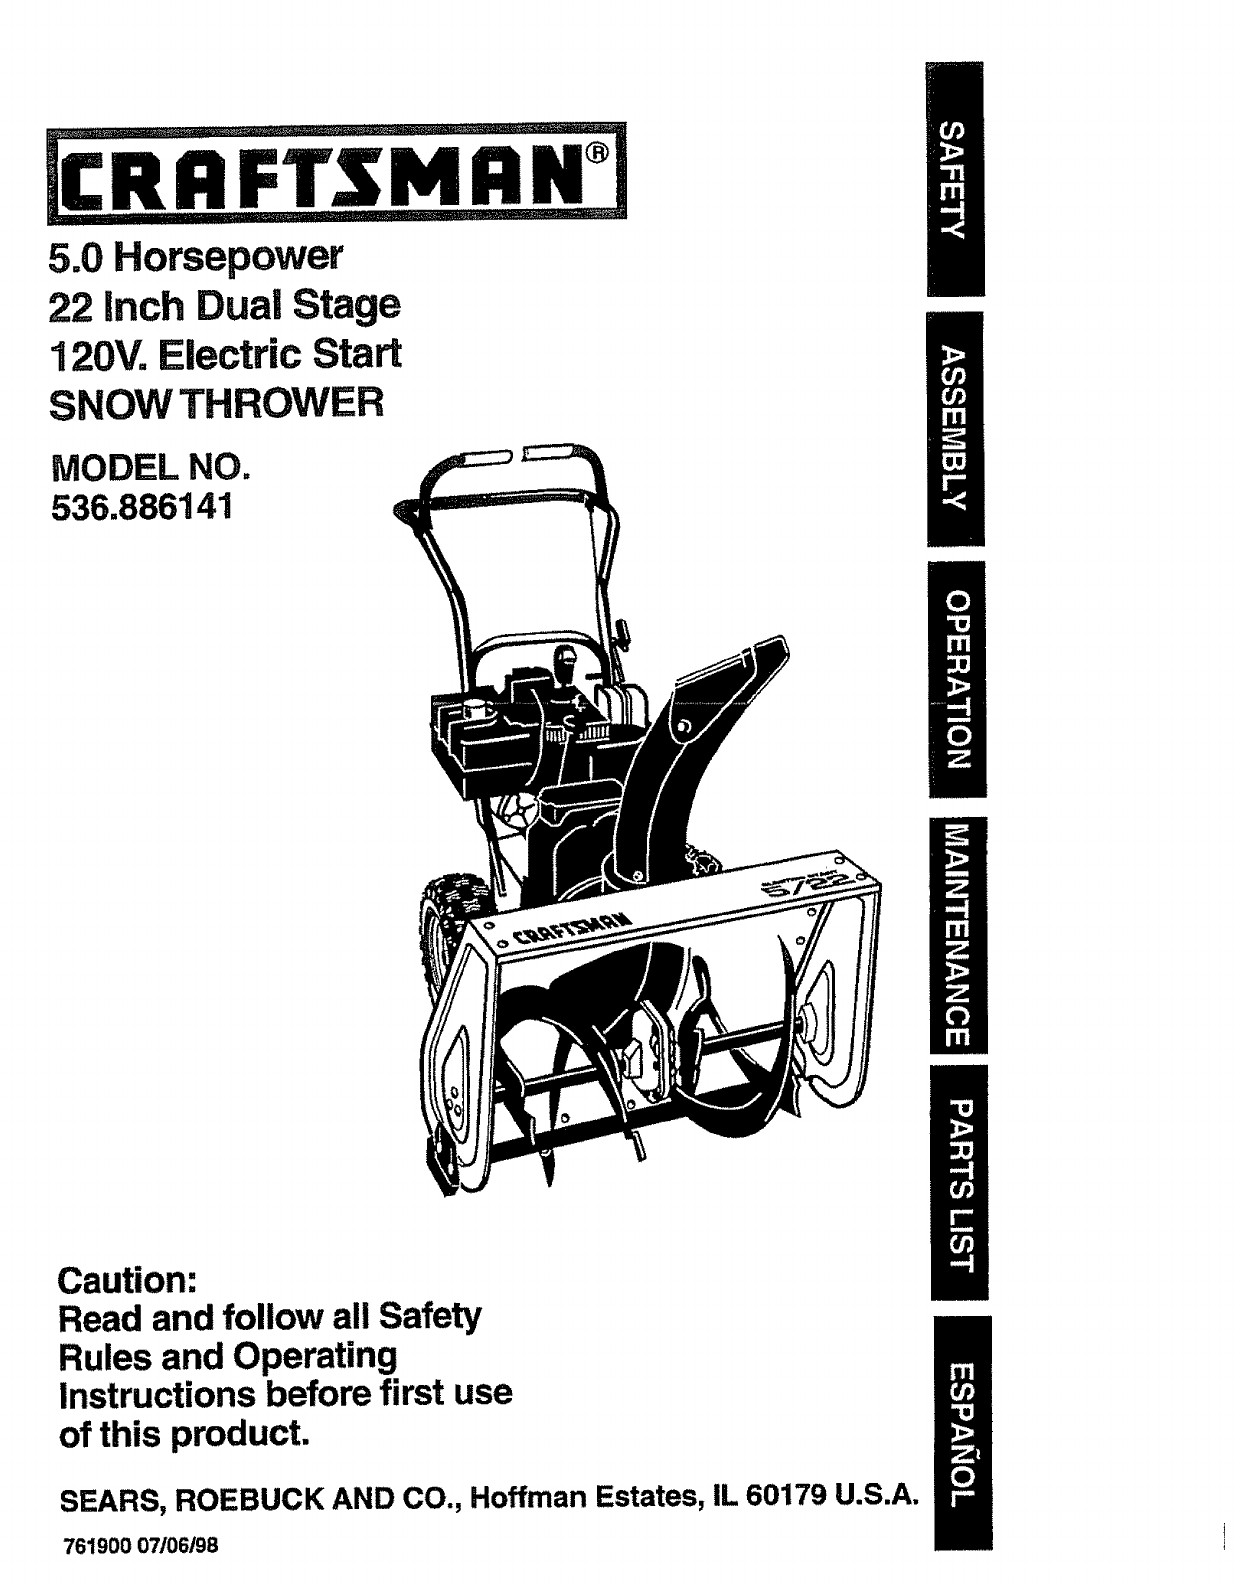 Craftsman Snow Blower 536.886141 User Guide